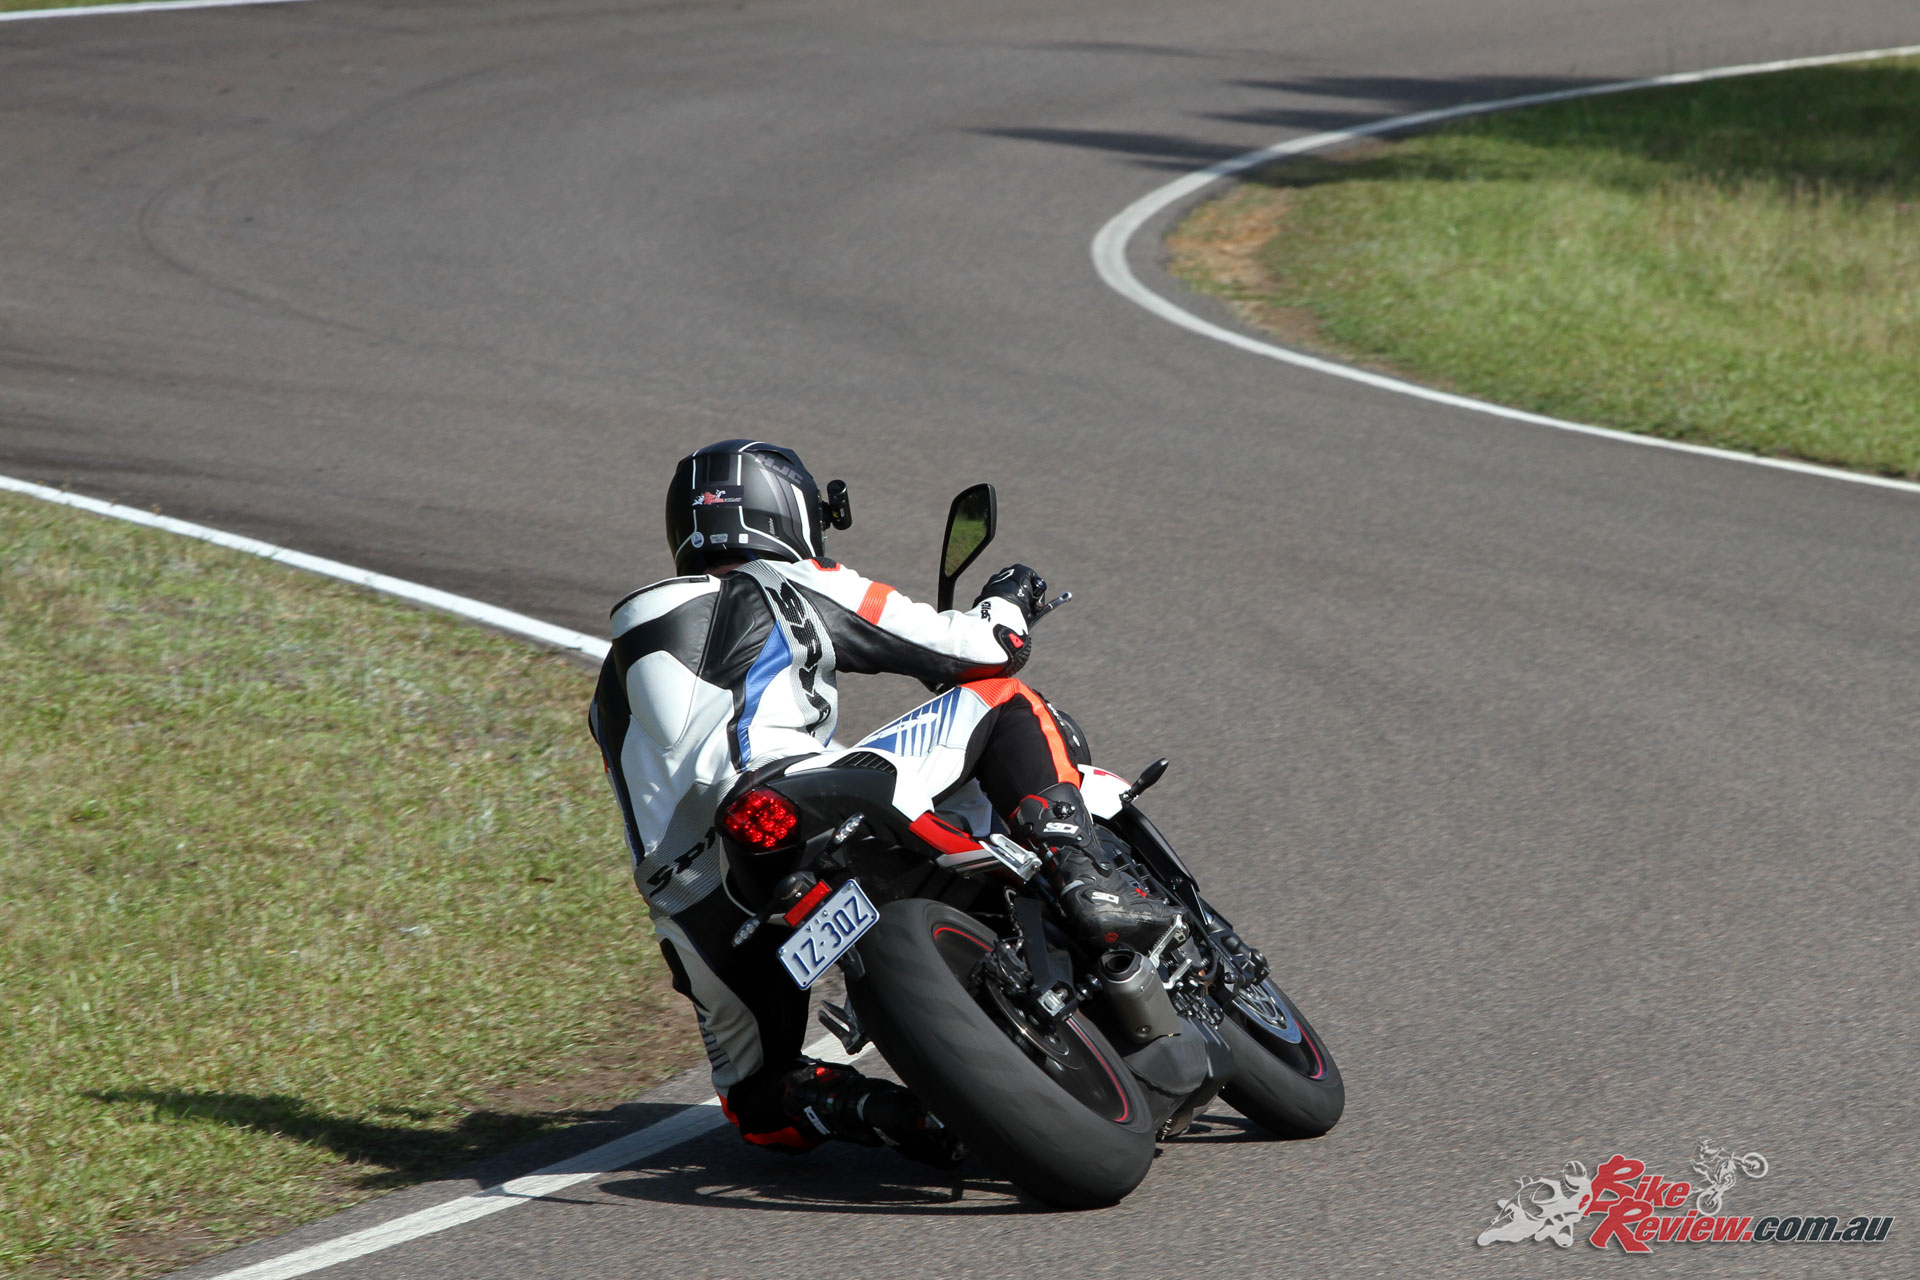 The new Street Triple feels like a larger 675 and is more sensible, but didn't have quite the same thrill at the Proving Ground.